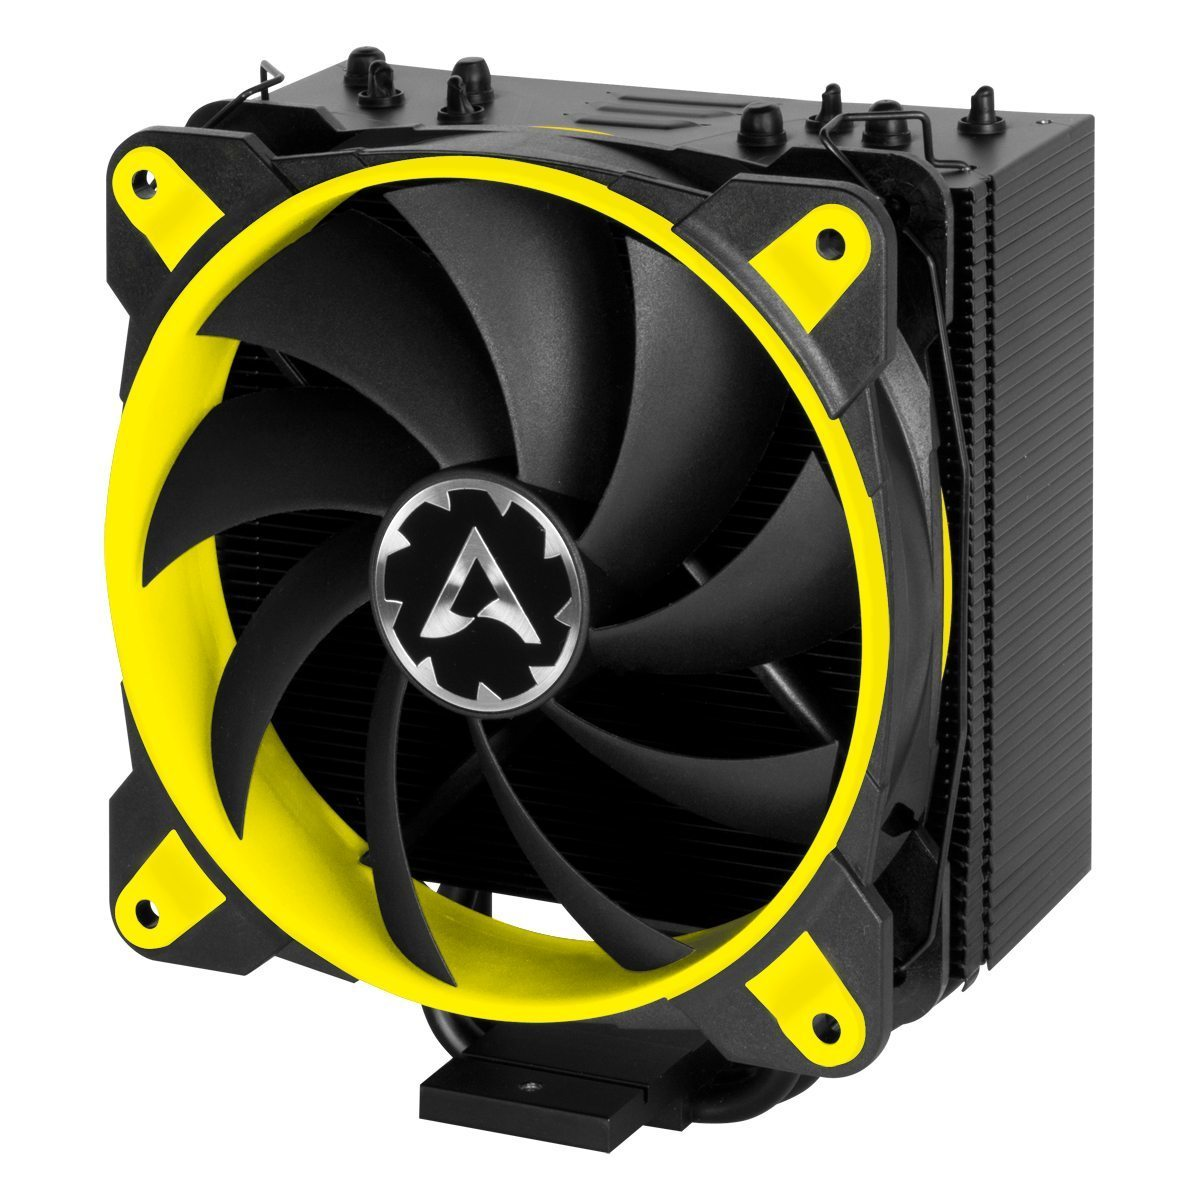 Freezer 33 eSports ONE - Yellow - LGA2066/LGA2011/LGA1366/LGA775/AM4